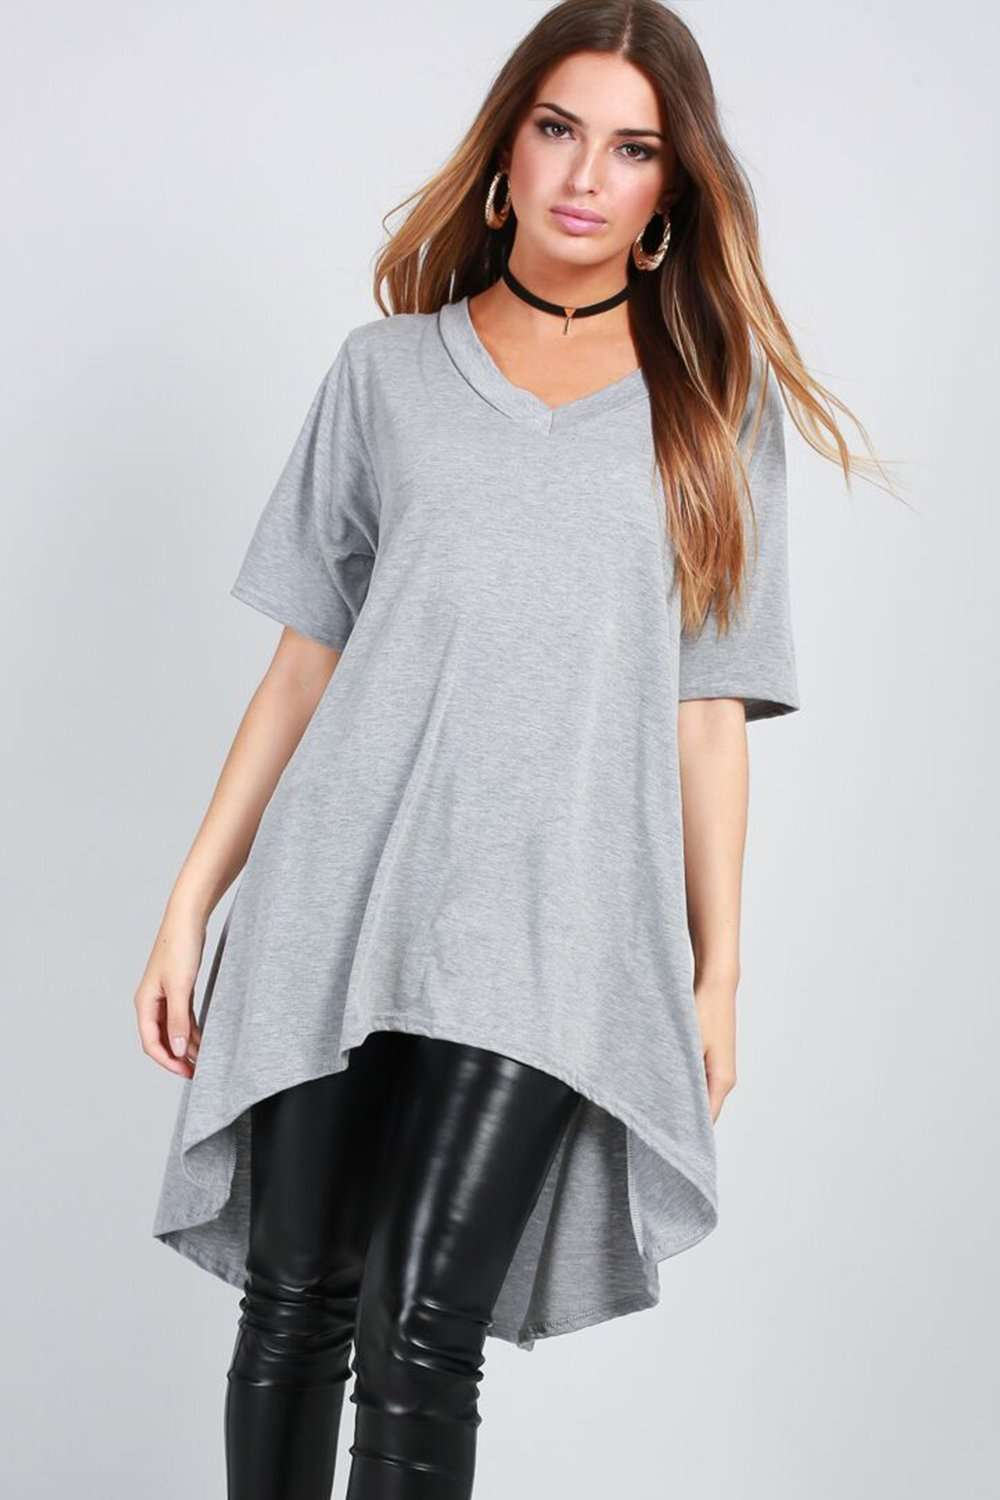 V Neck Blue Oversized Hi Lo Basic Tshirt - bejealous-com